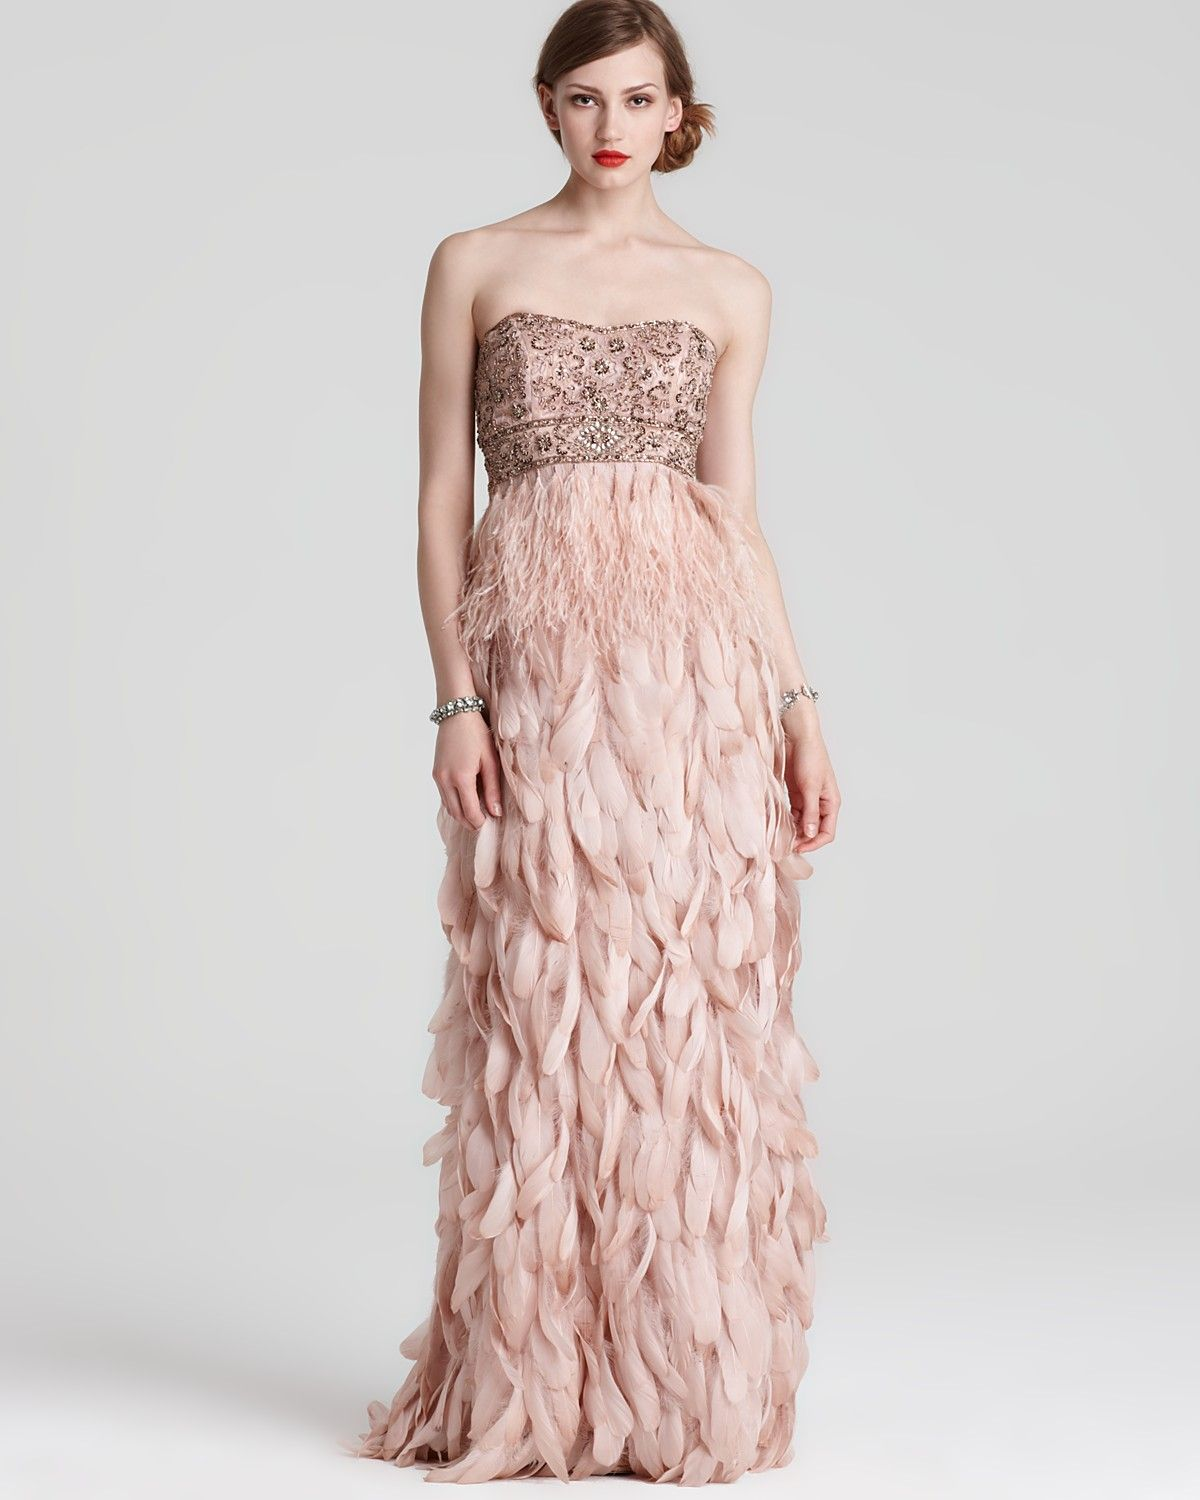 076f352a5227 Sue Wong Embellished Strapless Feather Gown. Feather obsession ...